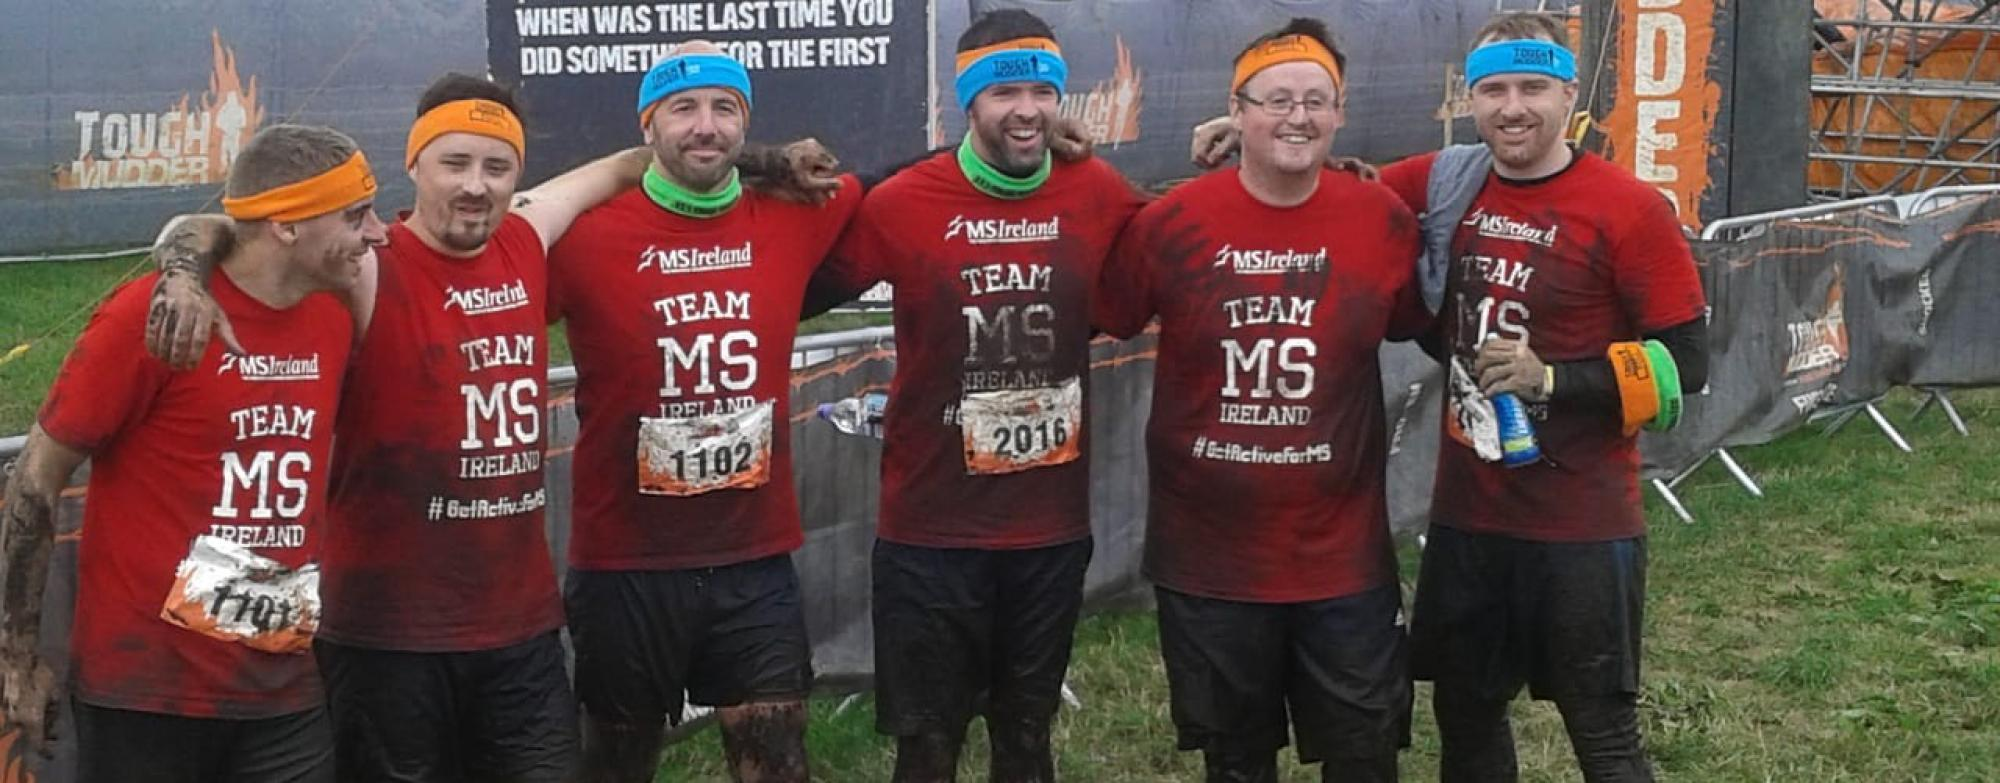 Tough Mudder Group Picture